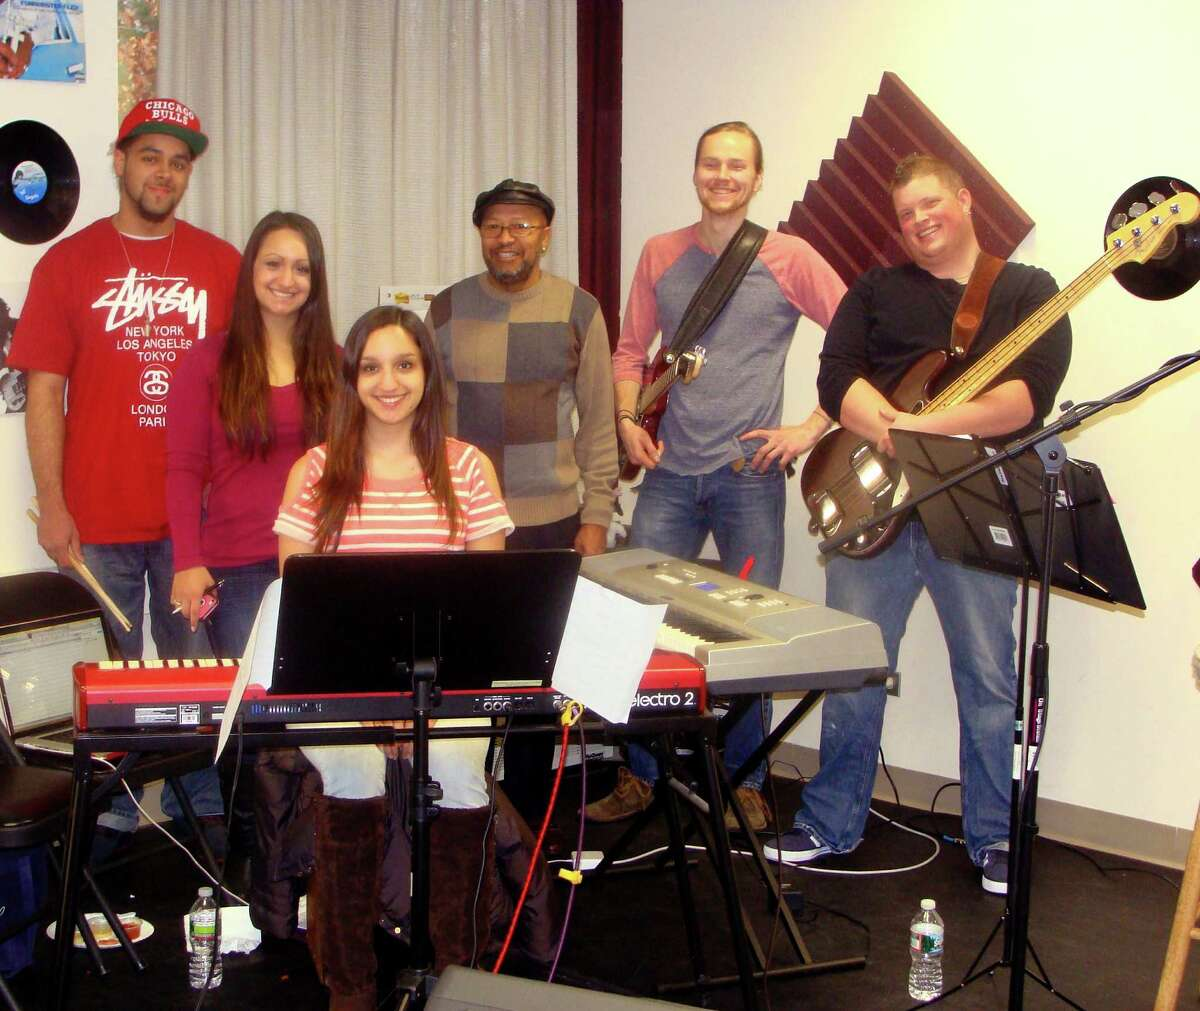 Instructors from the Pop Music Academy will accompany singers, musicians and professional performers at the annual showcase Jan. 25 to benefit the Stamford Hospitalís Bennett Cancer Center Music Therapy Program. Band members, from left, are Josh Carruthers on drums, Artistic Director Christine Occhino on vocals, Lisa Occhino on keyboard, Richard